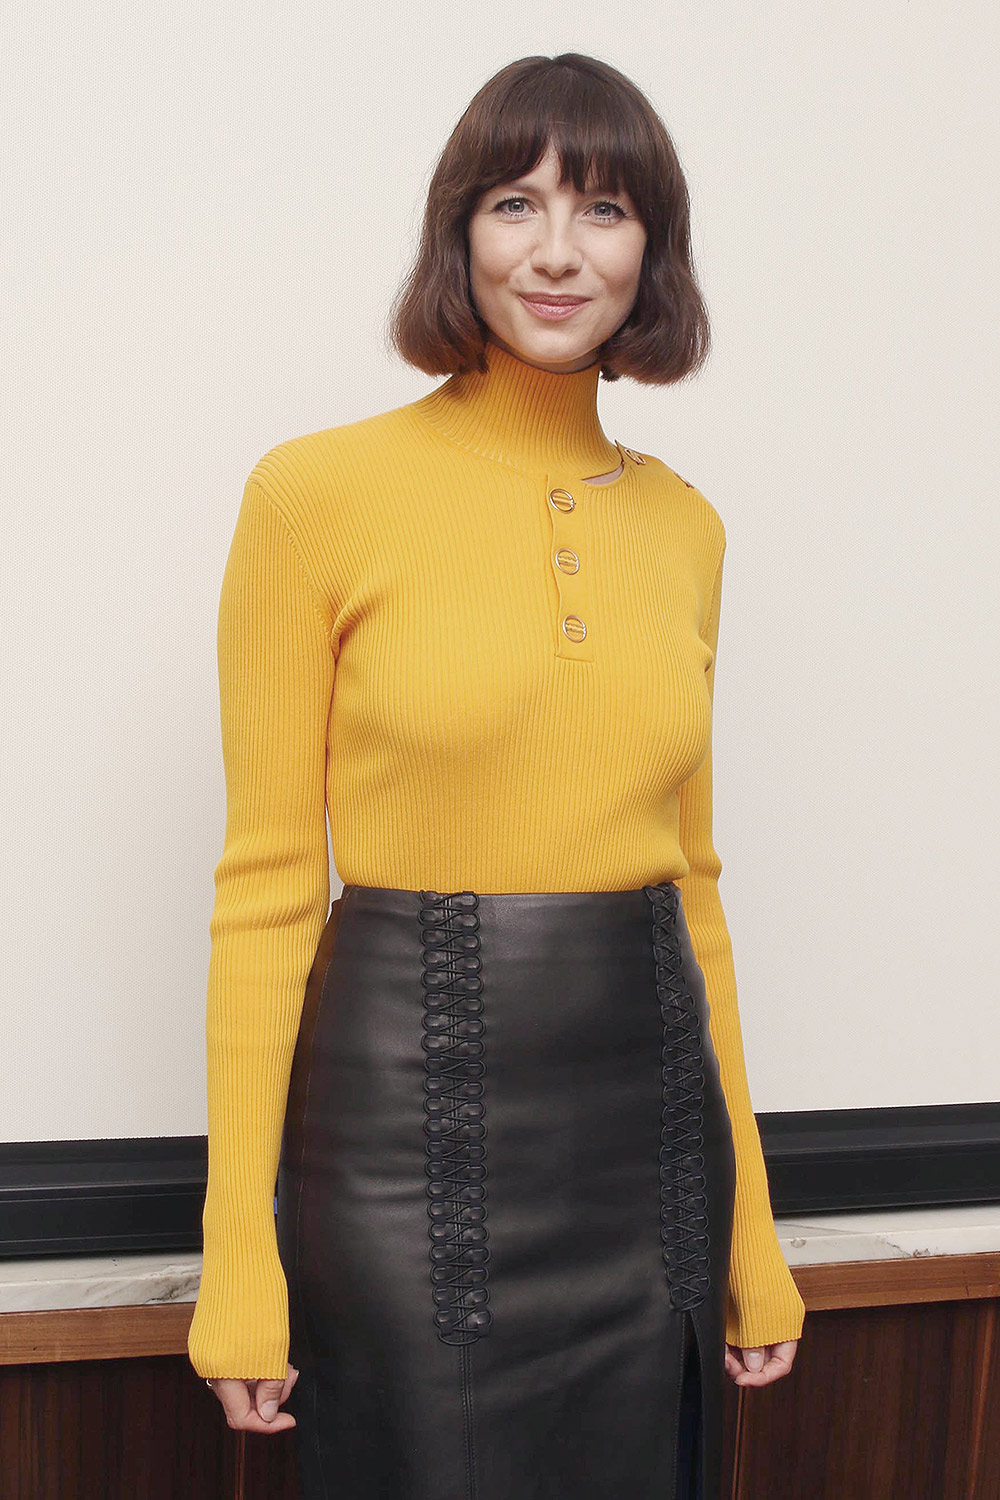 Caitriona Balfe attends Press Conference